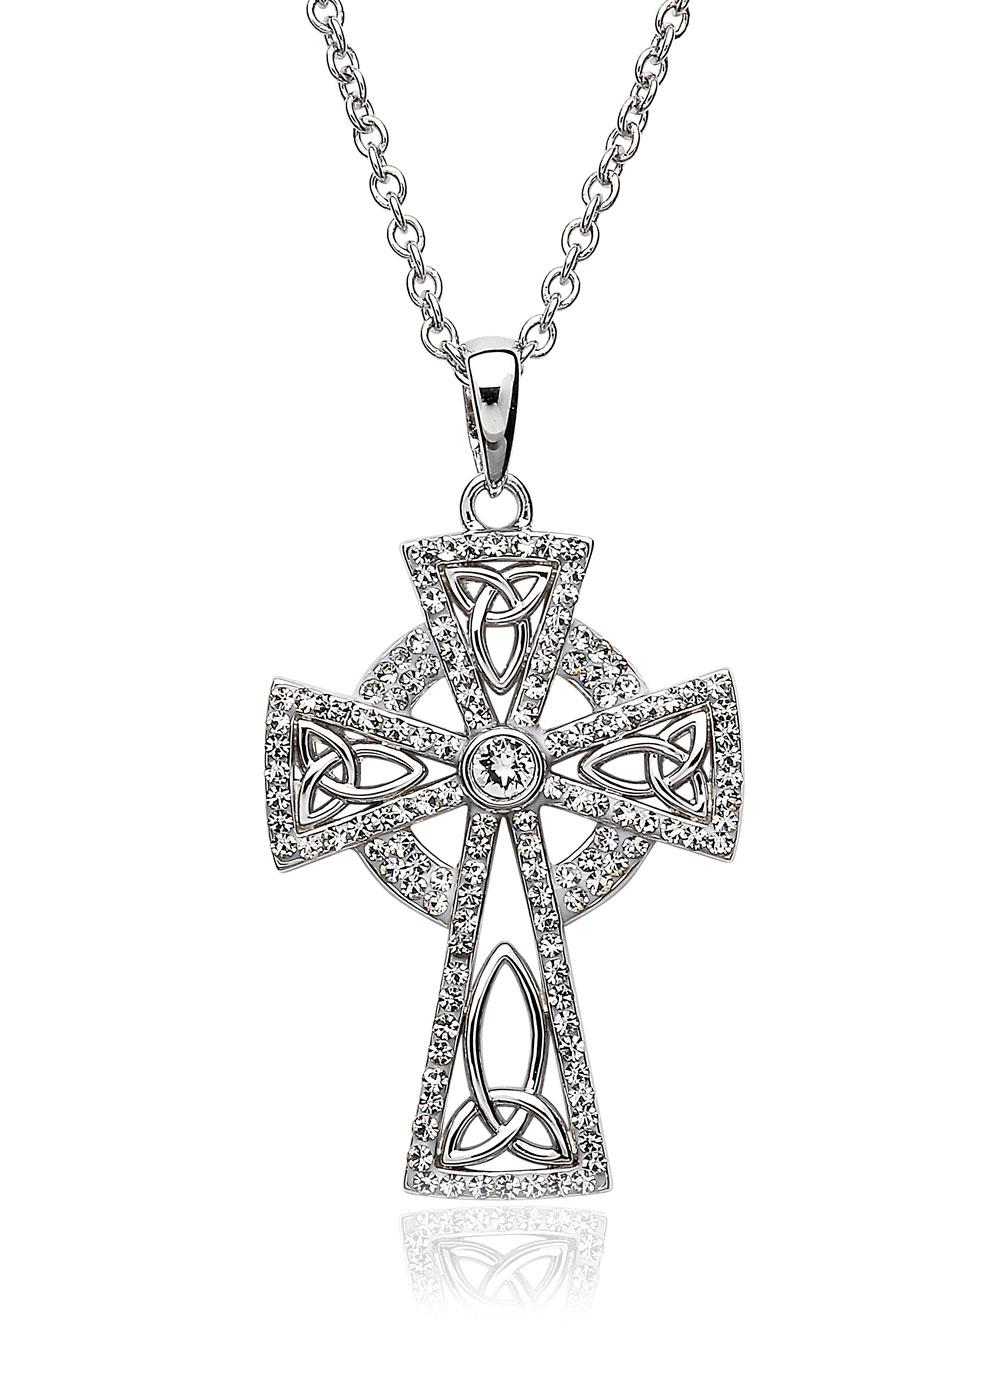 Celtic pendants celtic knot jewelry celtic cross necklace celtic cross pendant embellished with swarovski crystals biocorpaavc